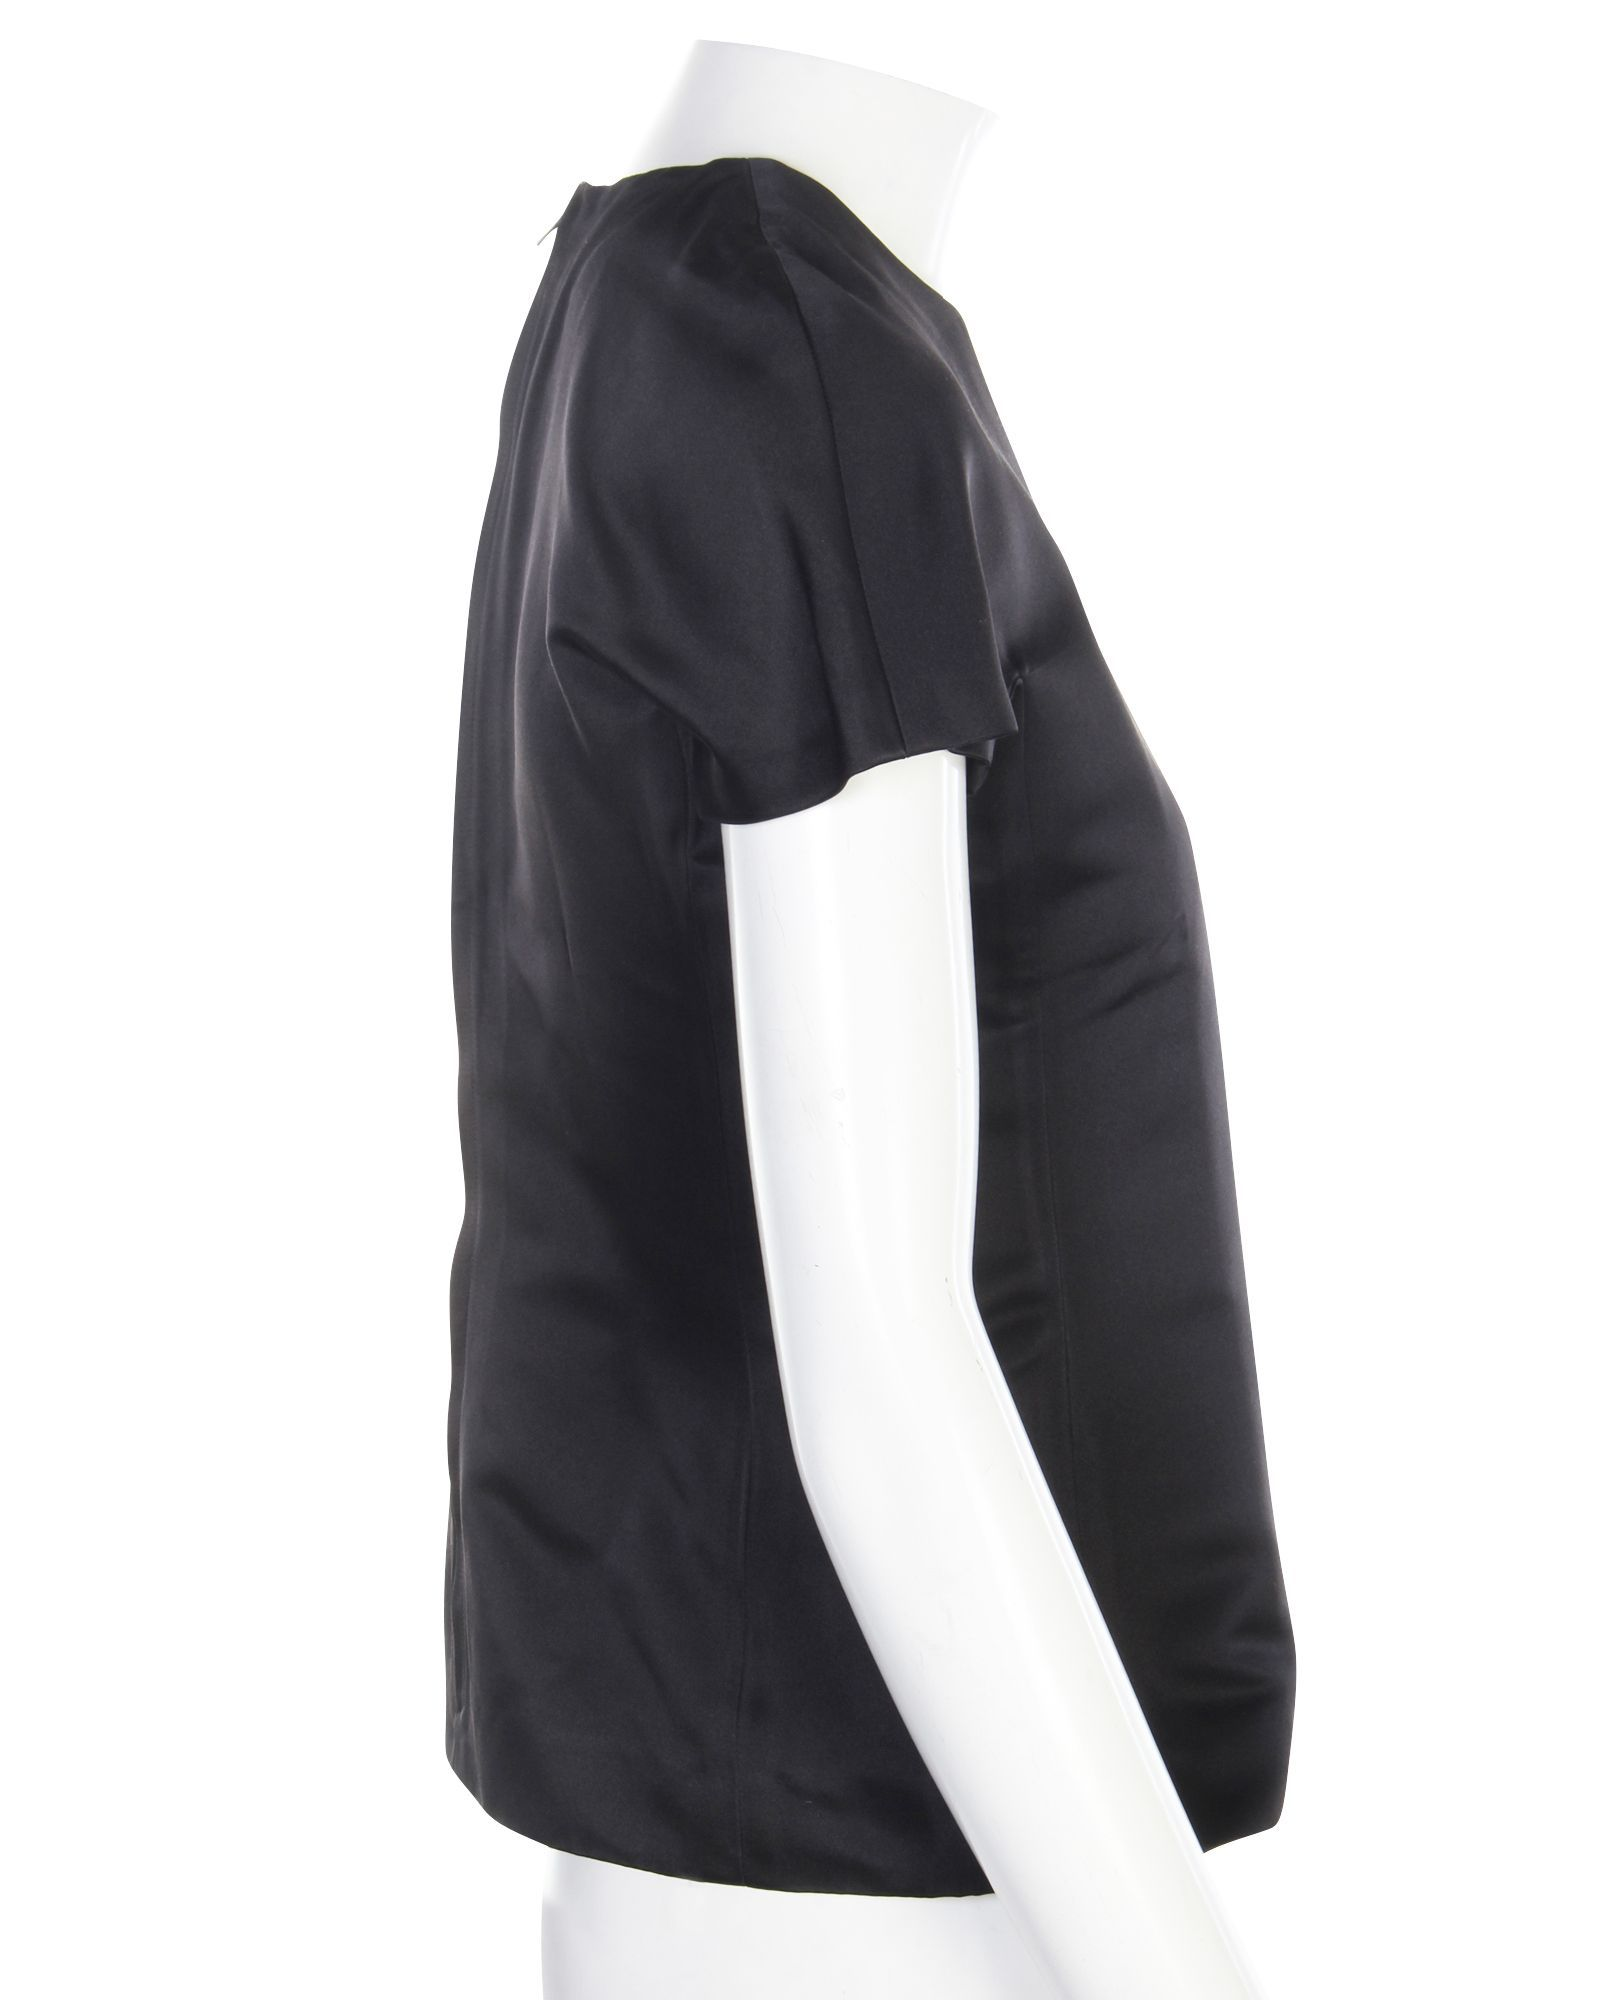 Hermès Classic Black Top With Back Zip -Pre Owned Condition Excellent